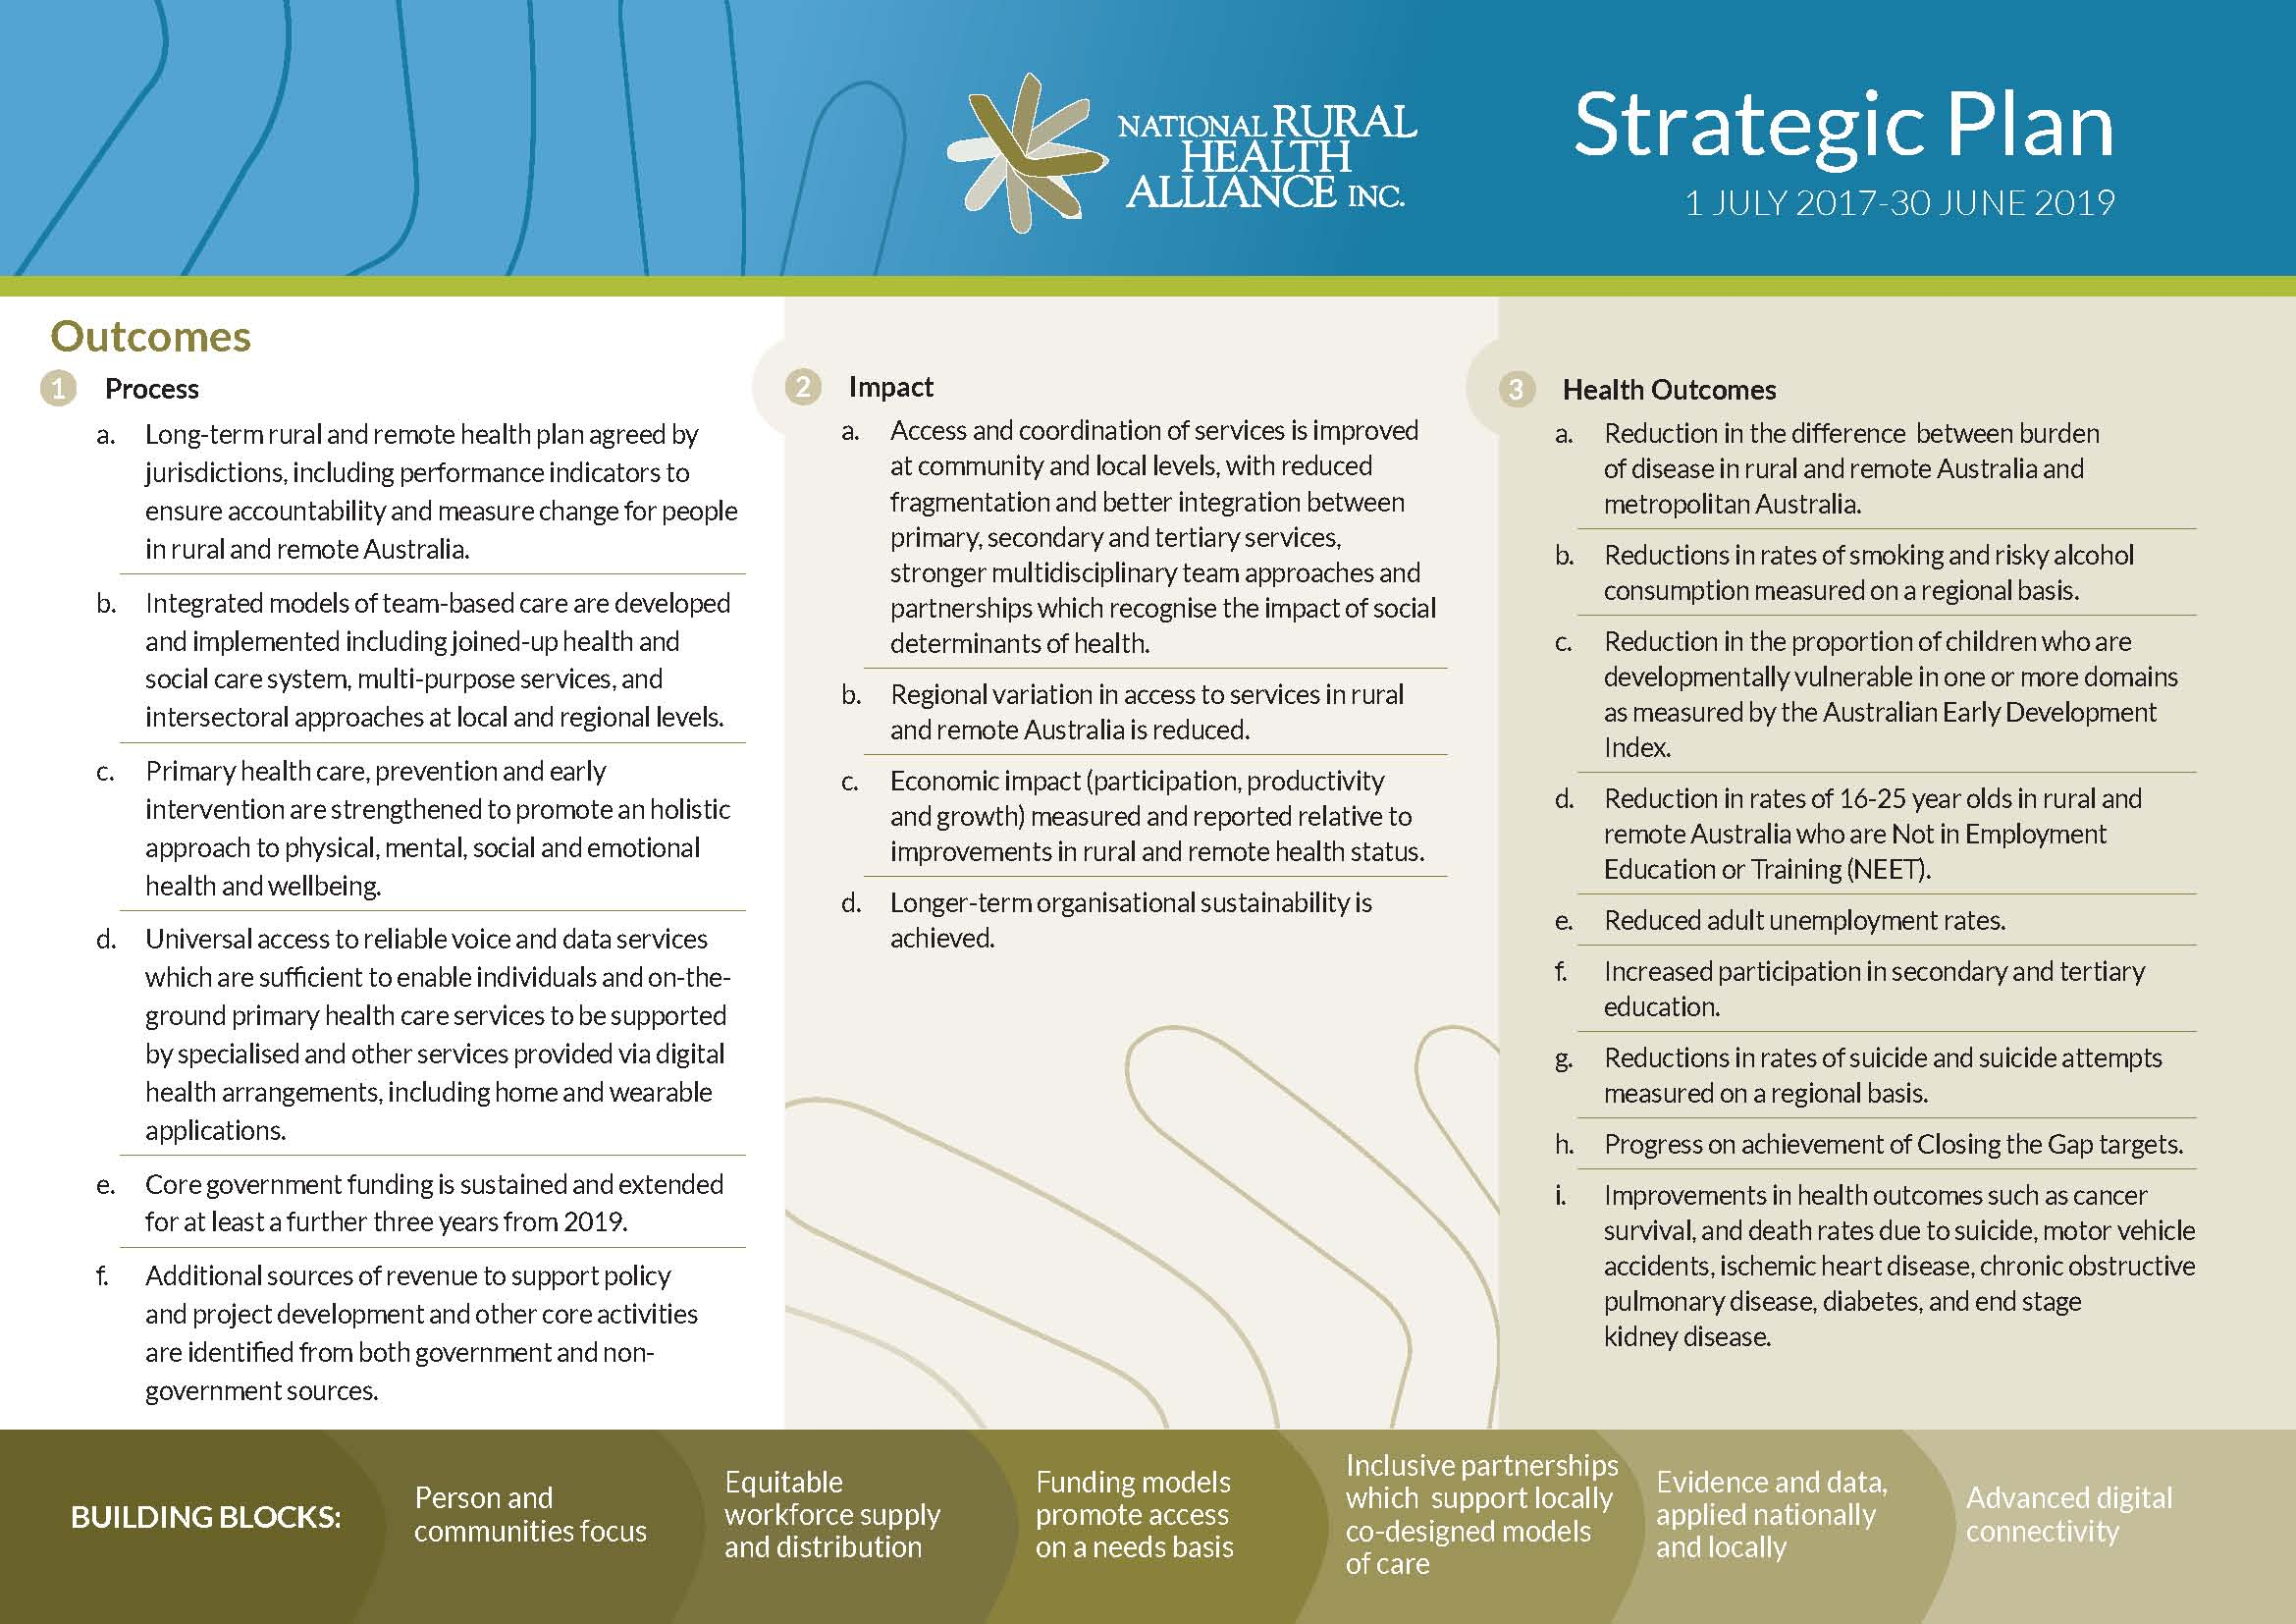 a national strategic plan for the He 2012-2016 border patrol strategic plan marks an important the 2012-2016 strategic plan builds on the foundation of the 2004 national border patrol strategy.